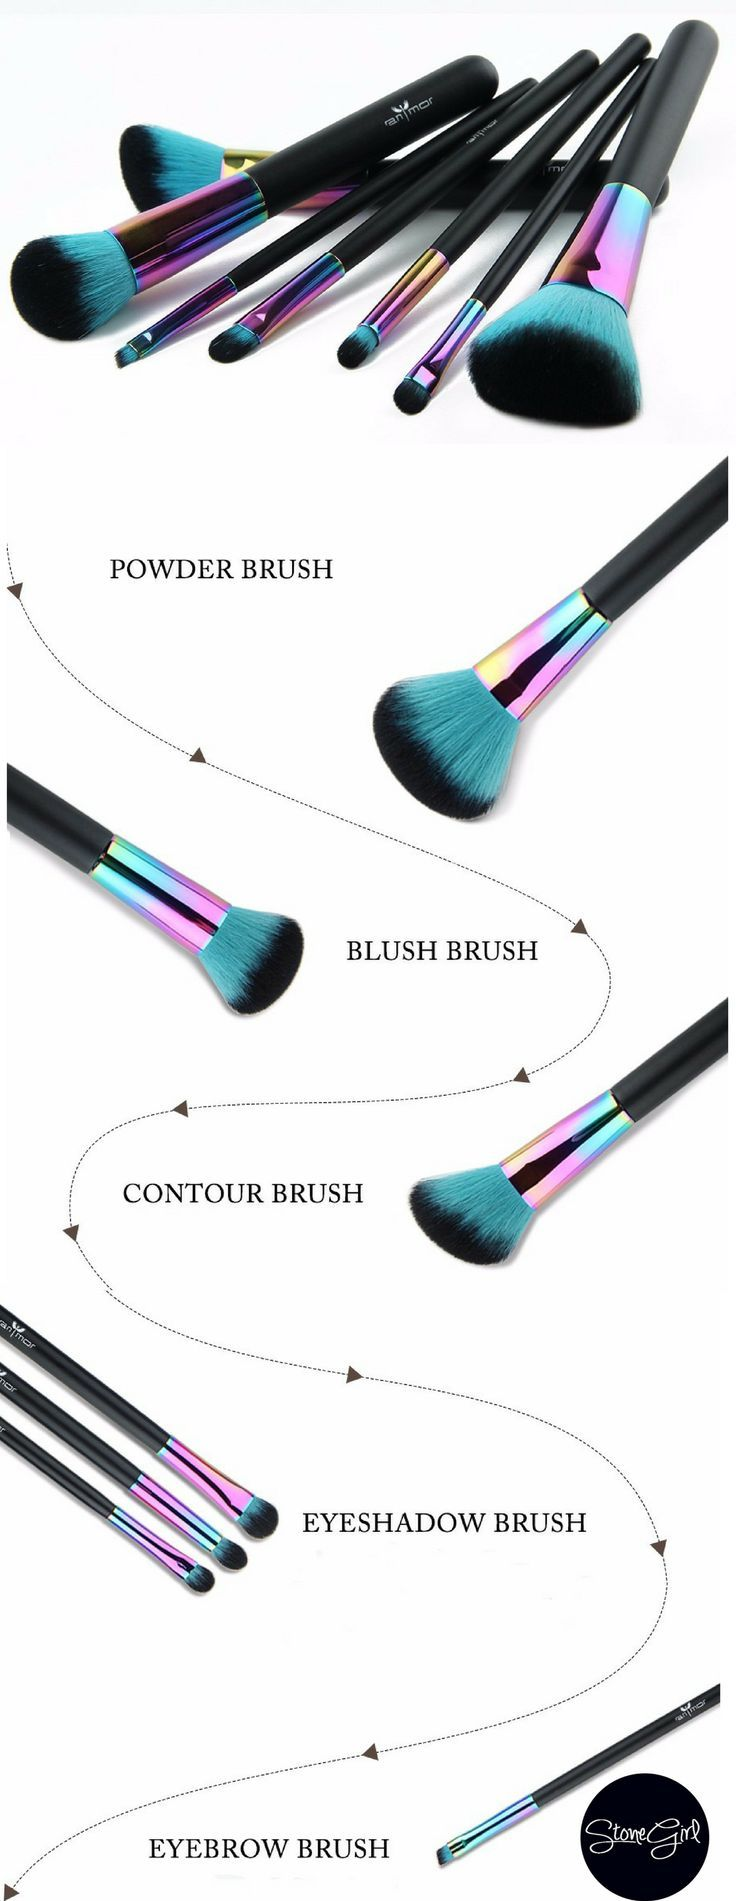 Product Highlights: - Stunning 7 Piece makeup brush set - Every brush you need for blending, contouring & highlighting - Our brushes are perfect for powders, liquids & minerals - High quality syntheti Nail Design, Nail Art, Nail Salon, Irvine, Newport Beach